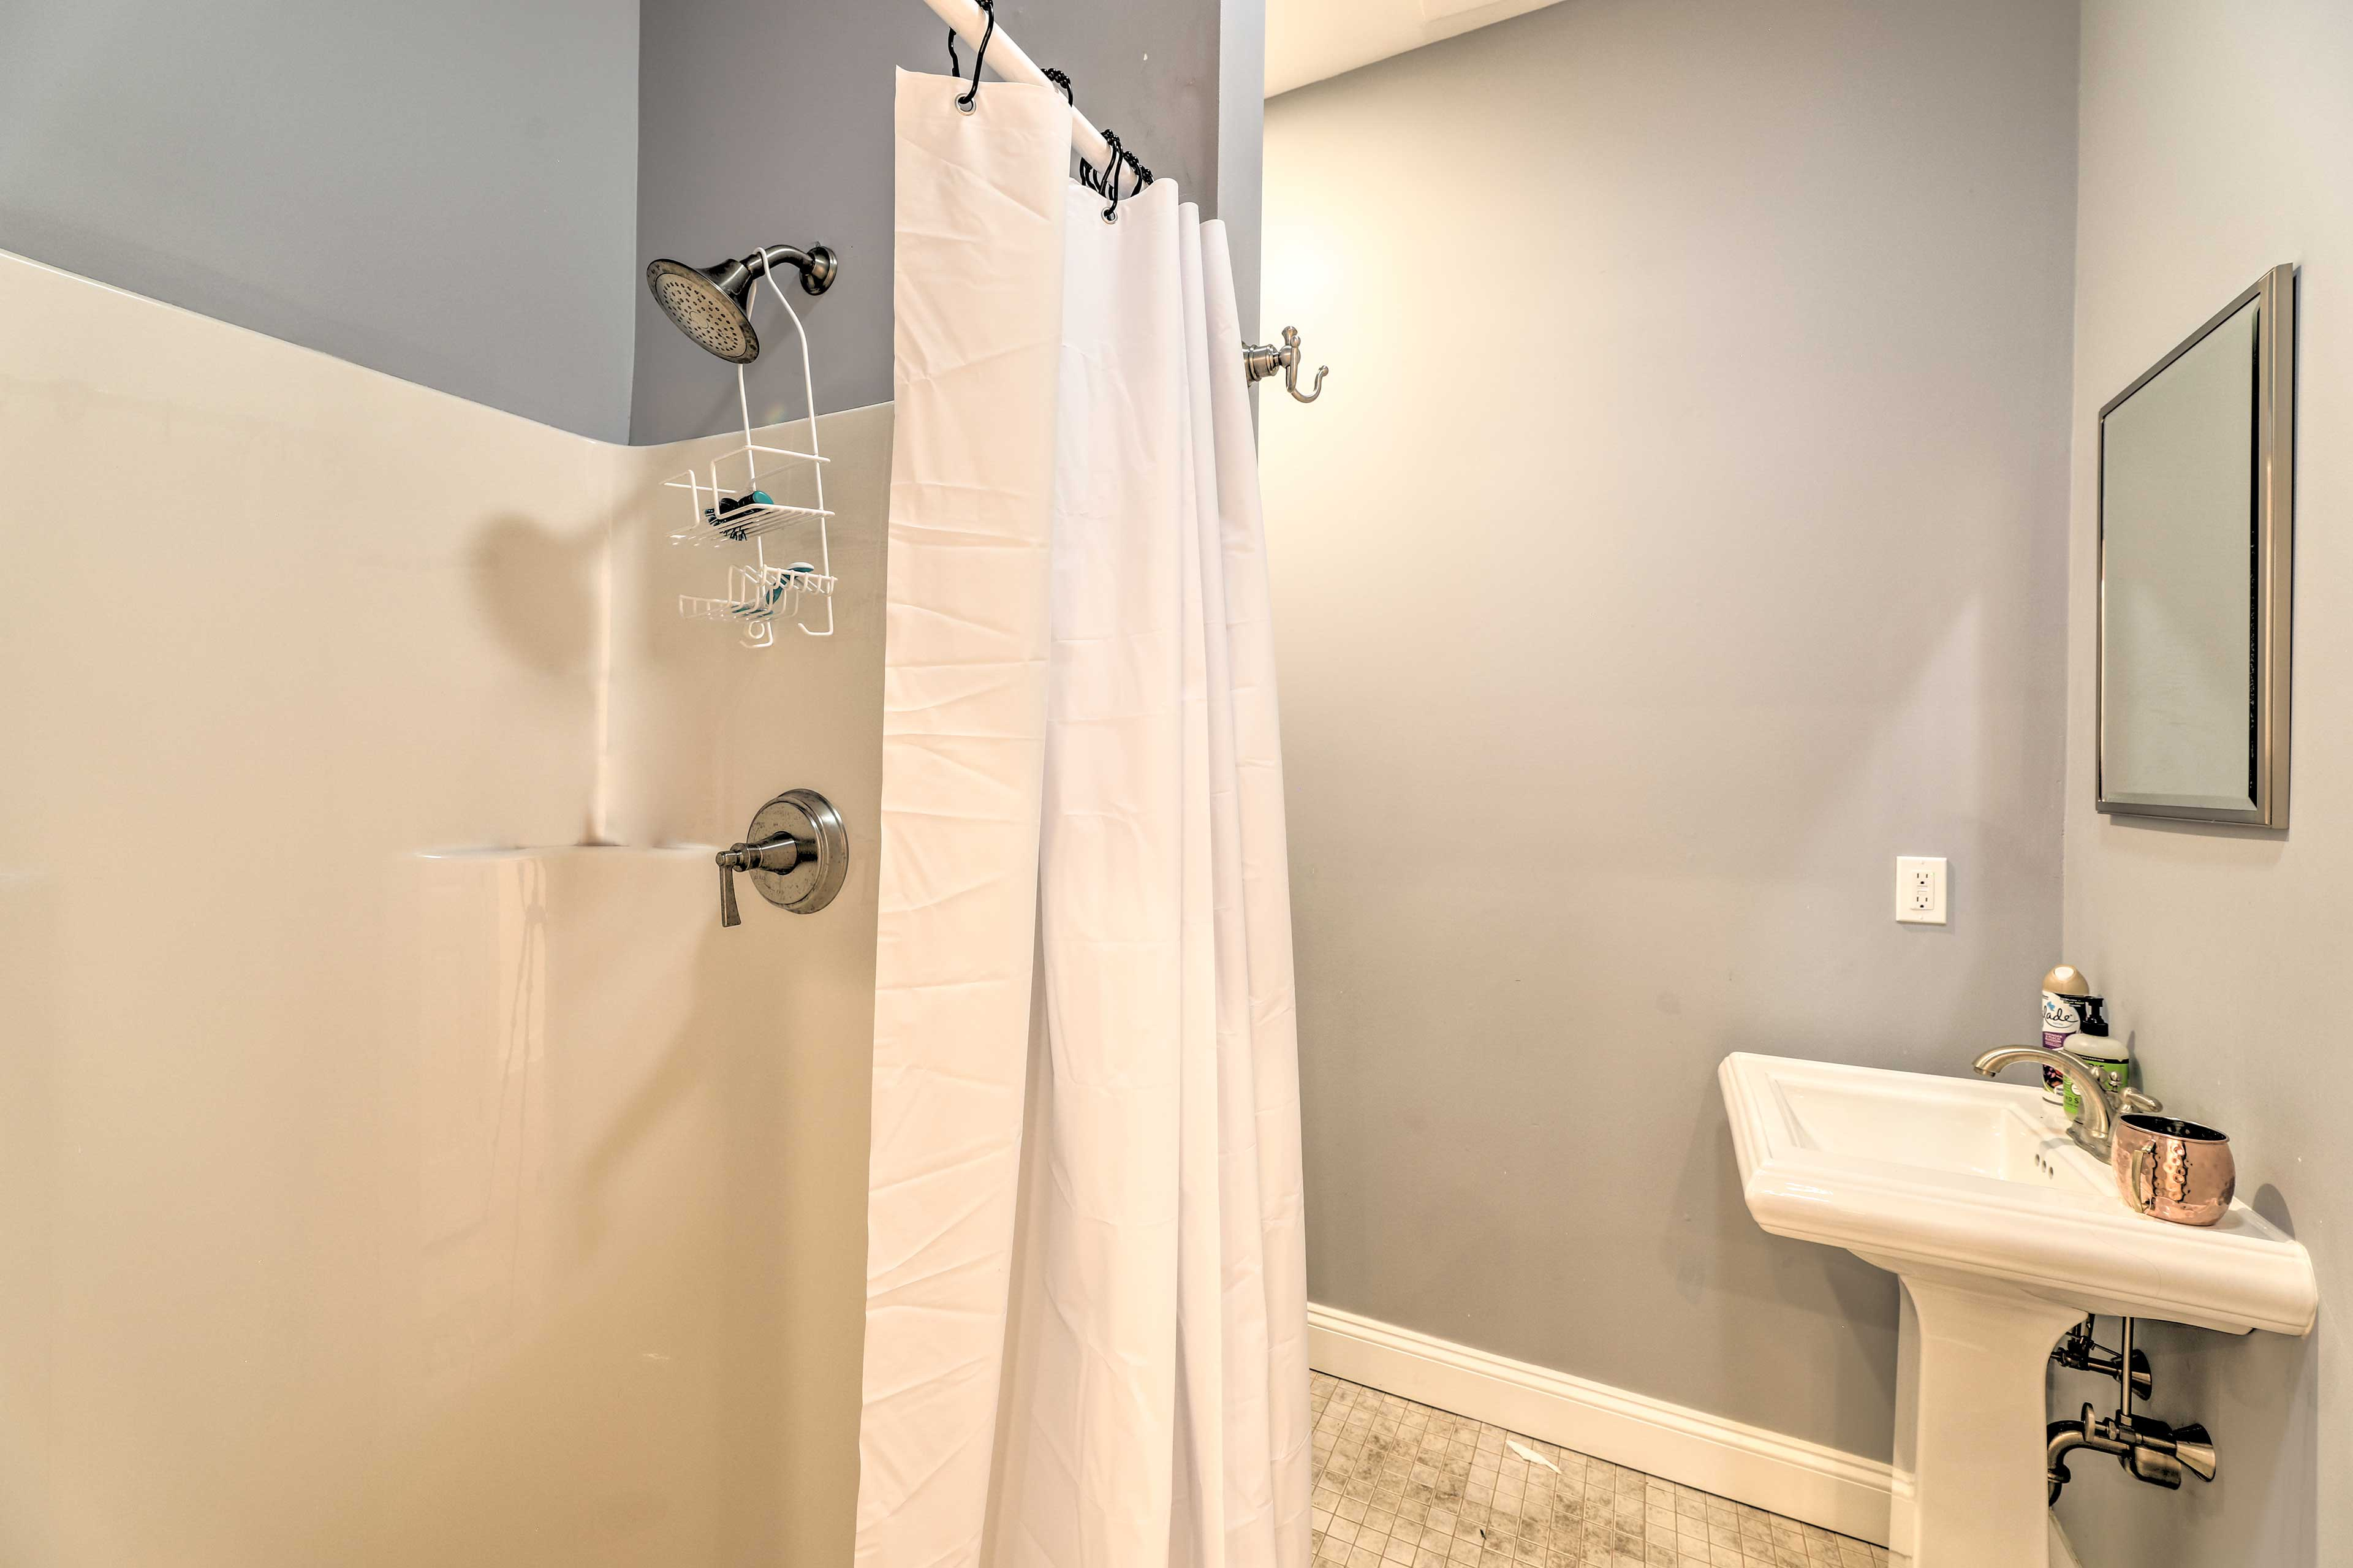 With the home's many bathrooms, no one will have to wait to wash.